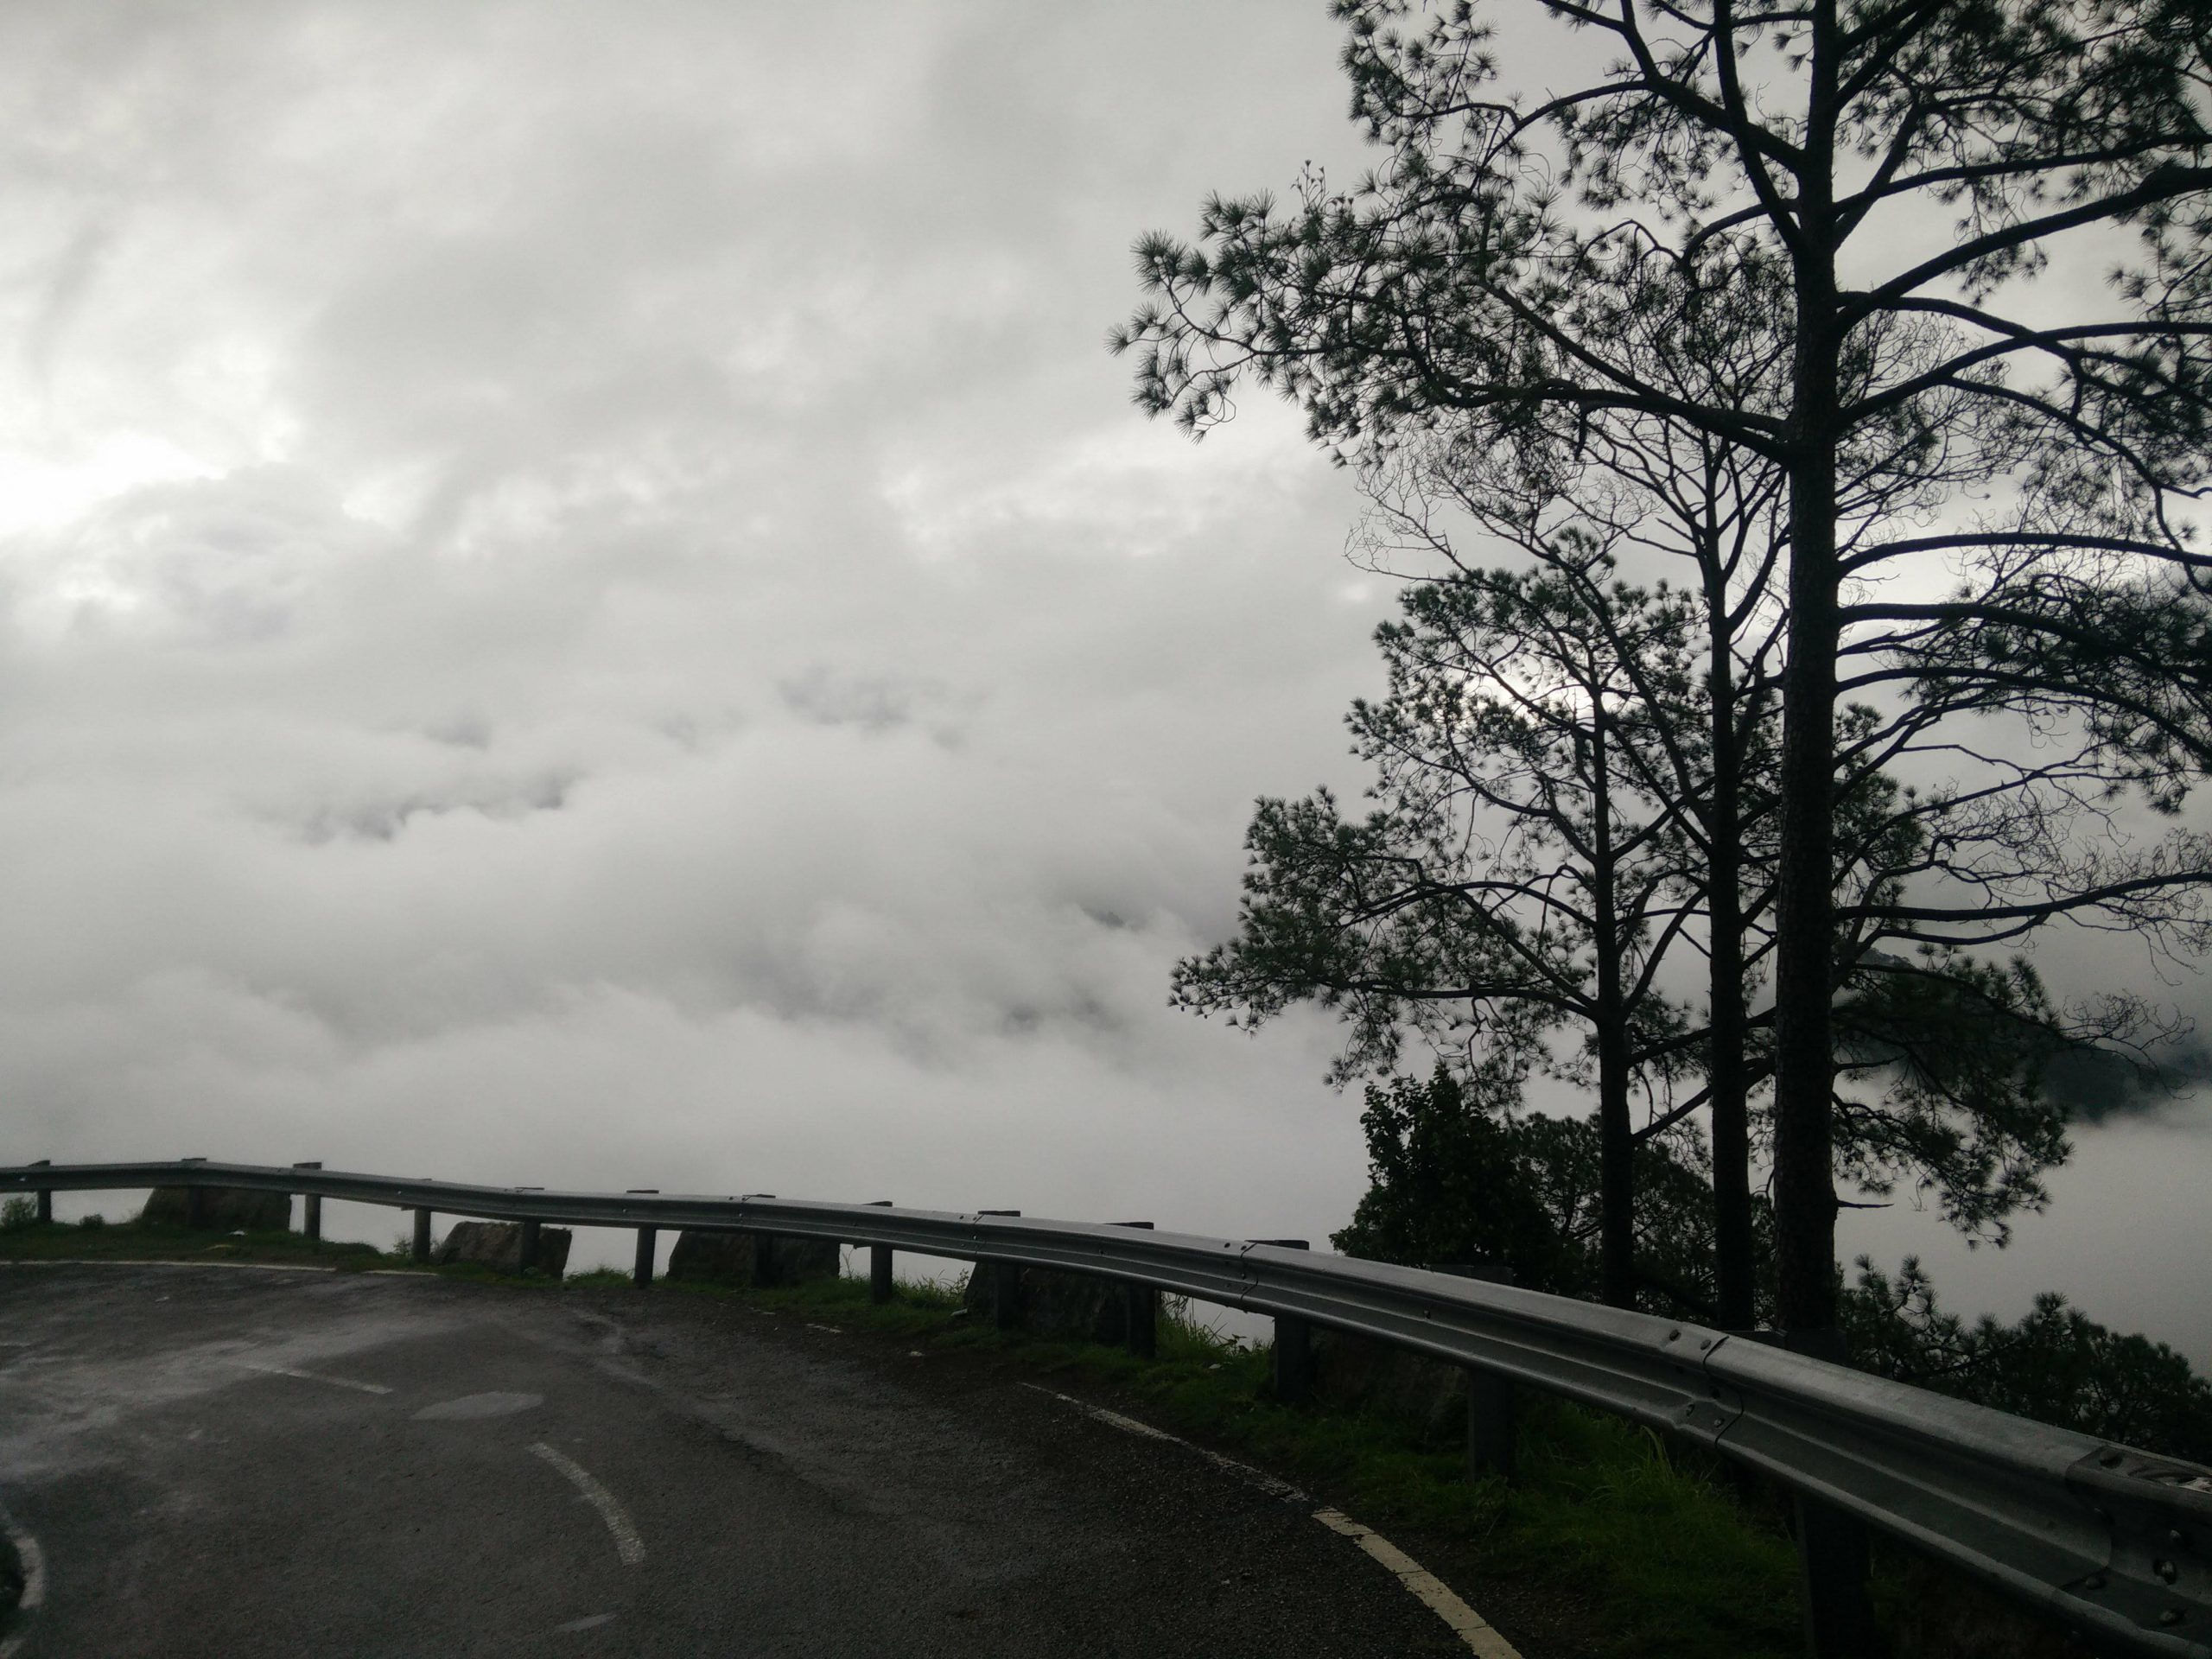 Highway in the midst of clouds